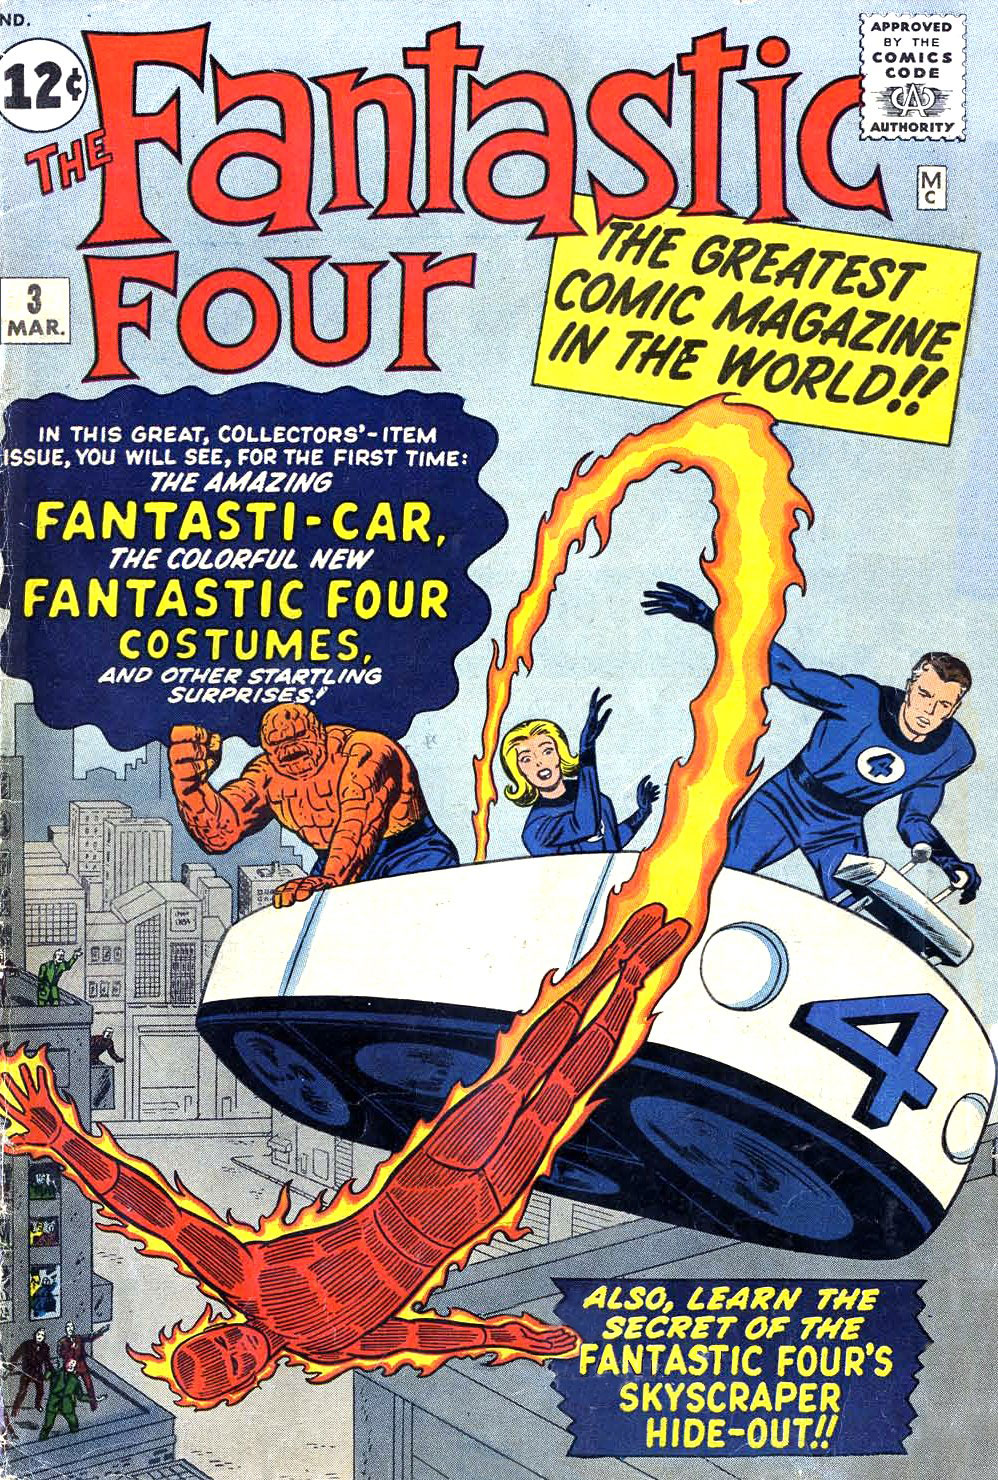 Fantastic Four Issue 3